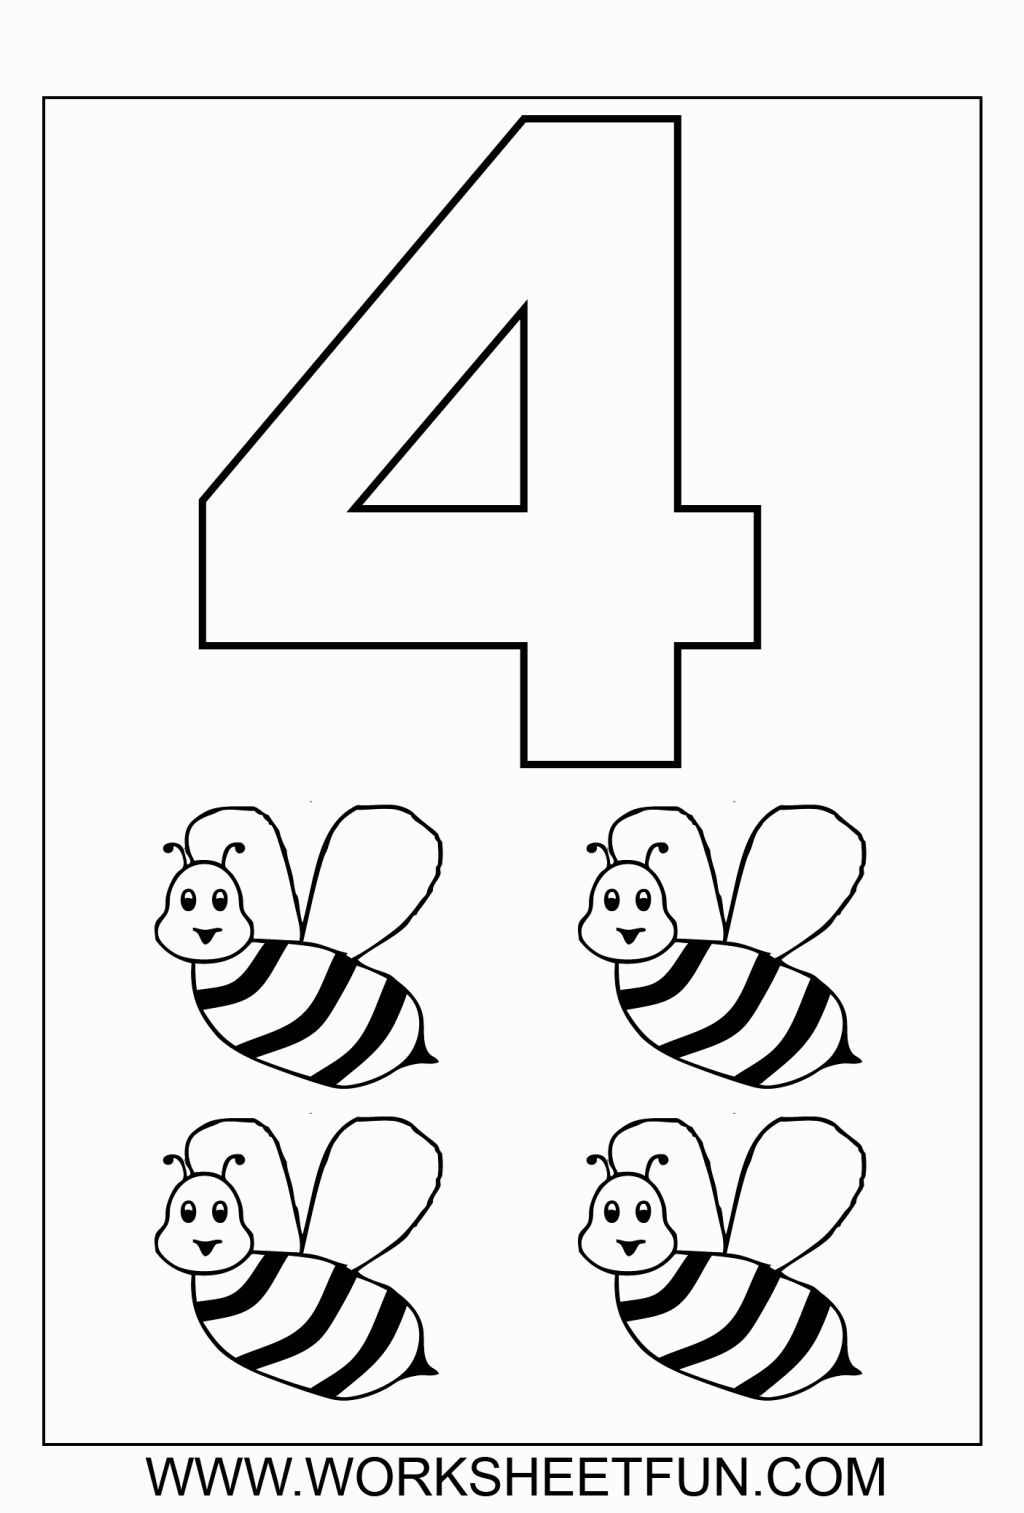 Color worksheets by number - Explore Printable Preschool Worksheets And More Number 3 Coloring Sheet